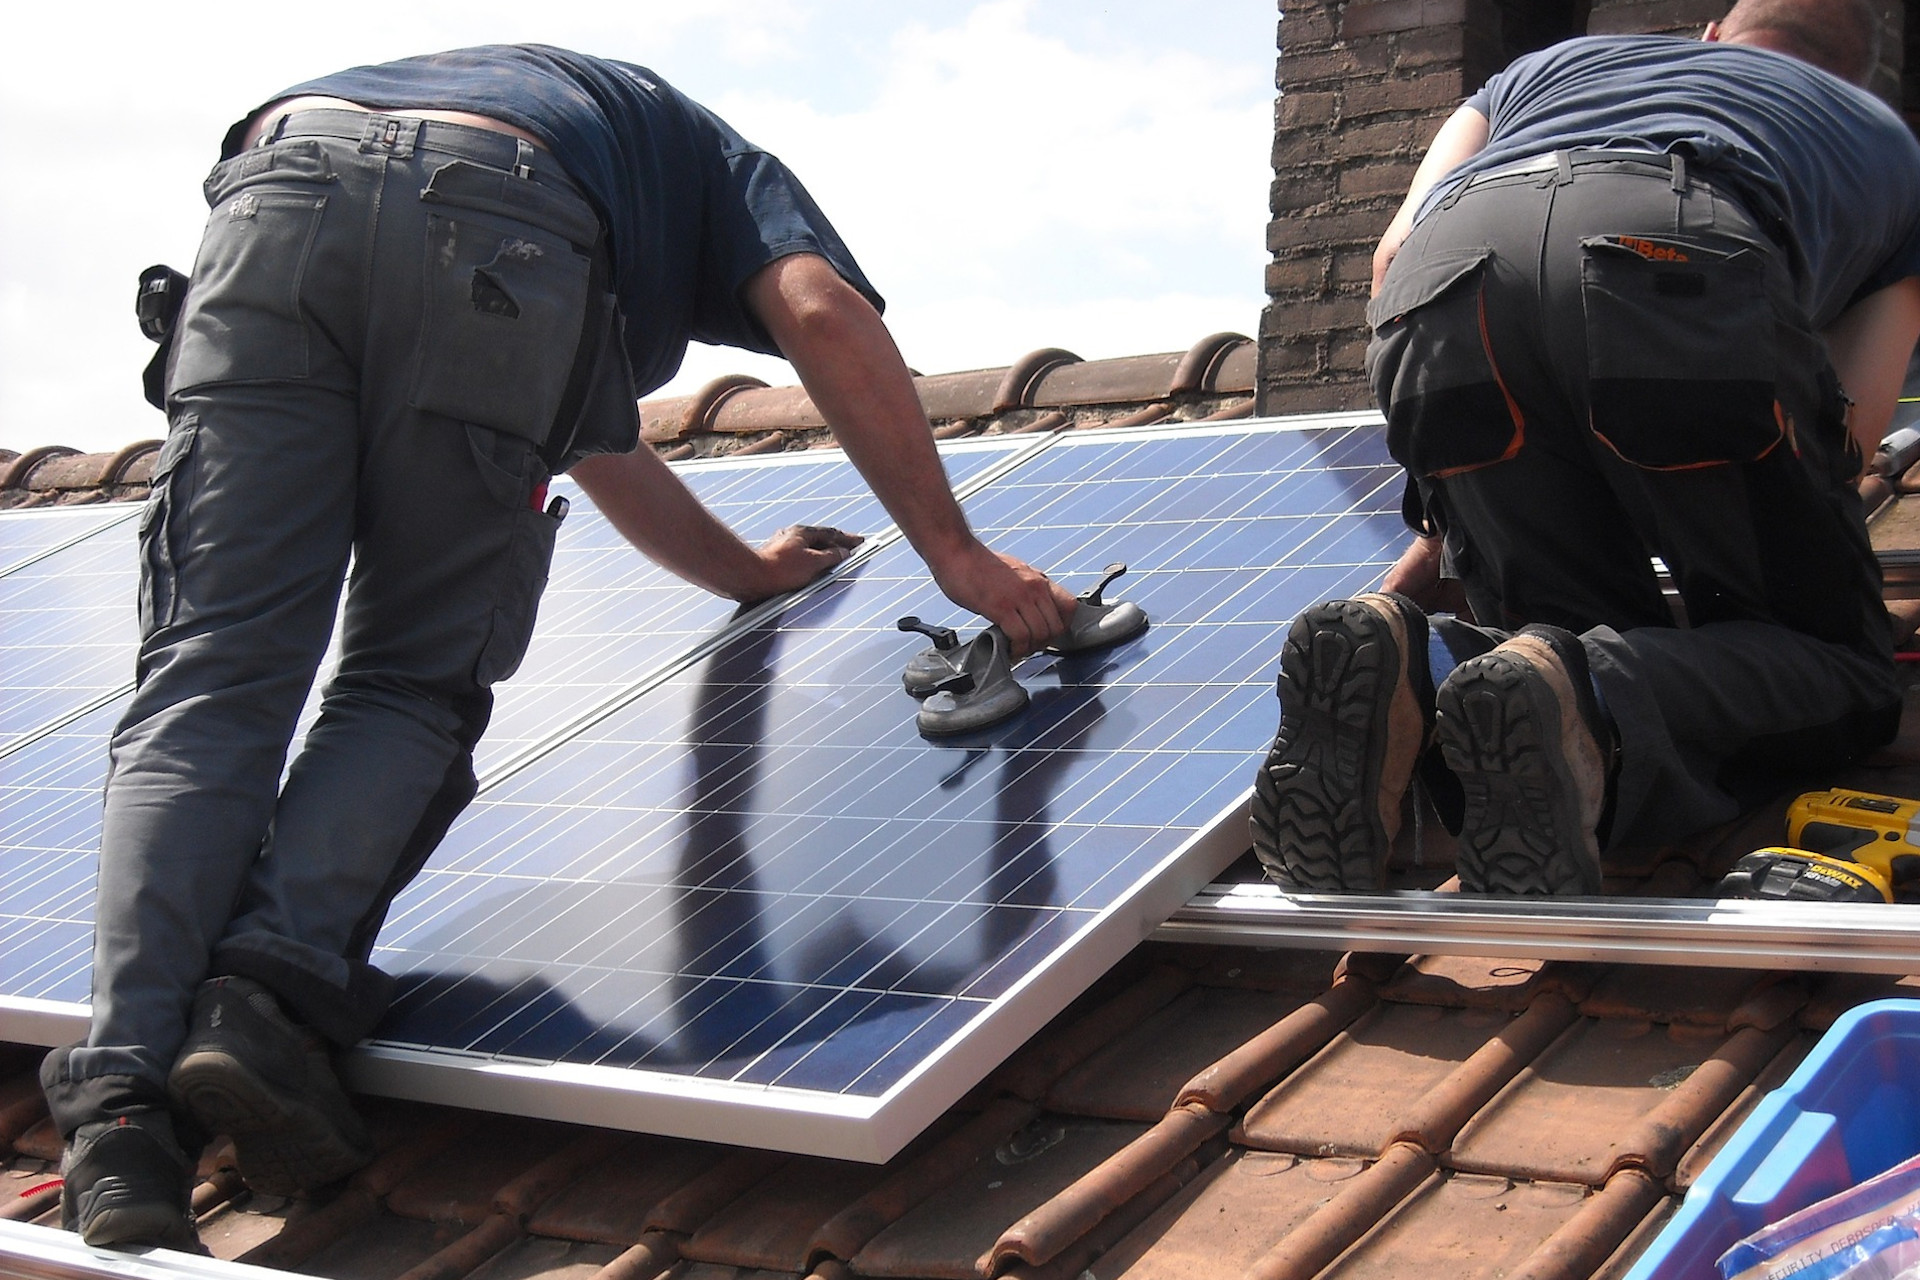 Two men fitting solar panels to a roof